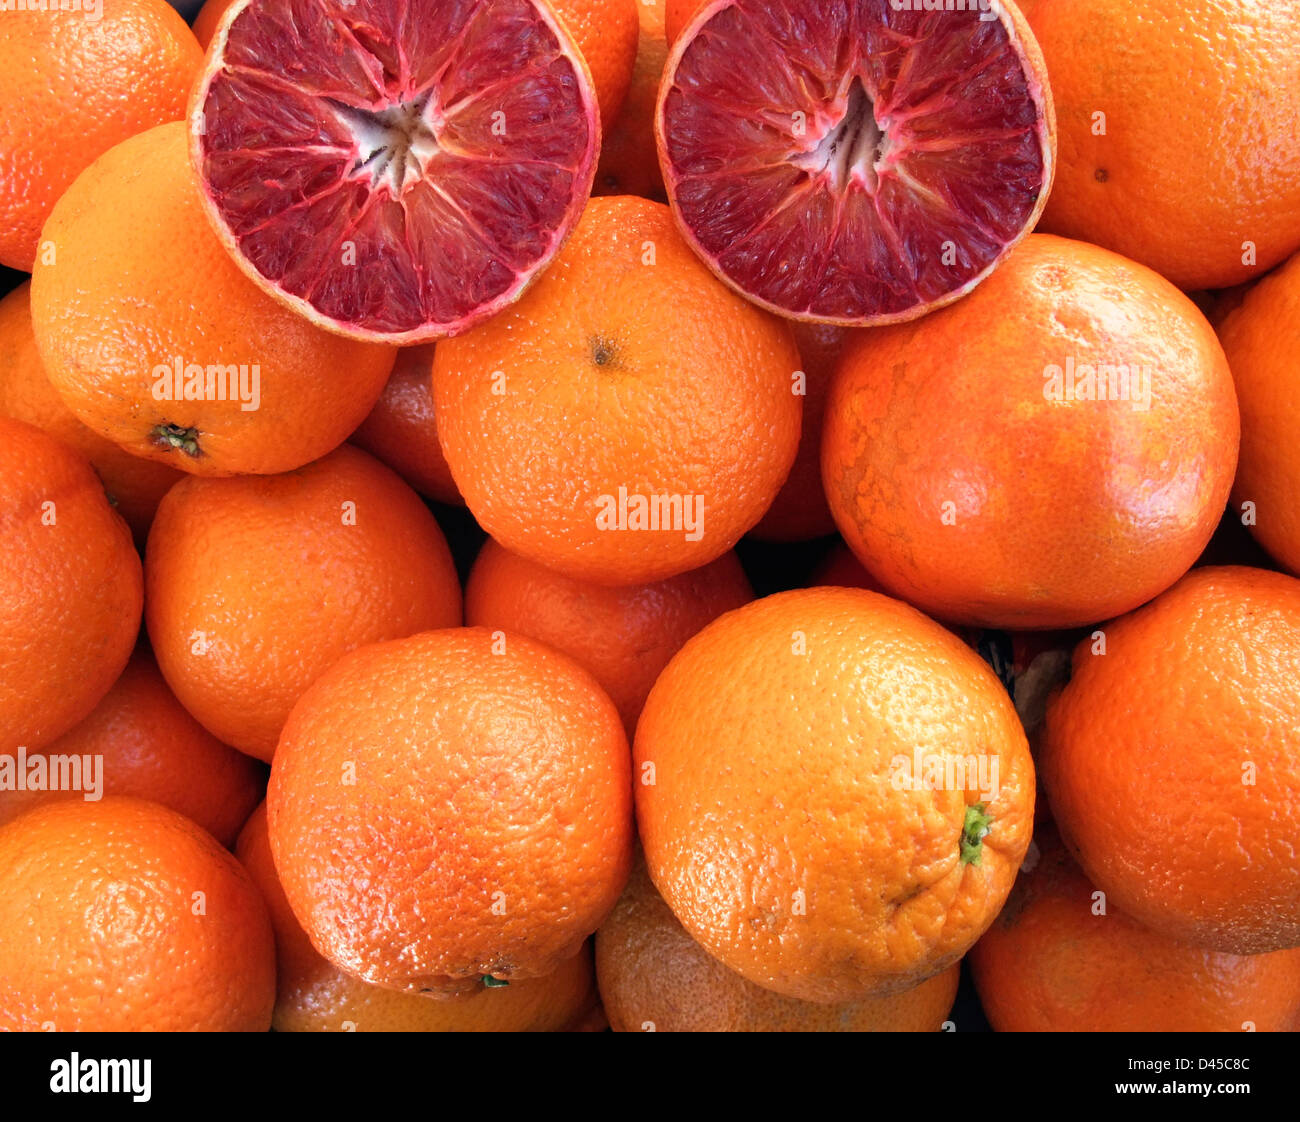 full frame background with lots of blood oranges - Stock Image